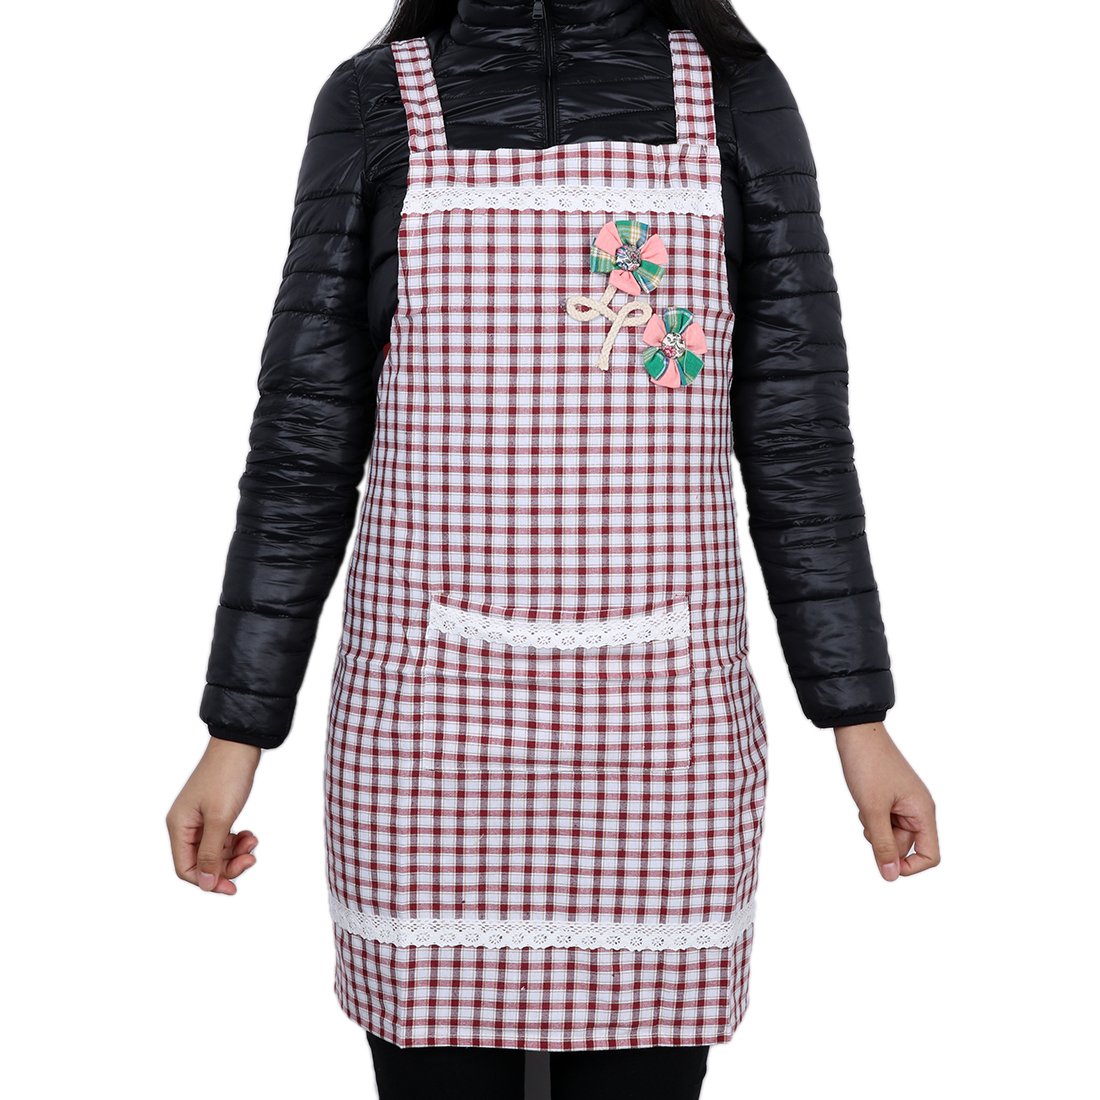 Grid Chefs Kitchen Bib Cooking Apron for Lady Purplish Red